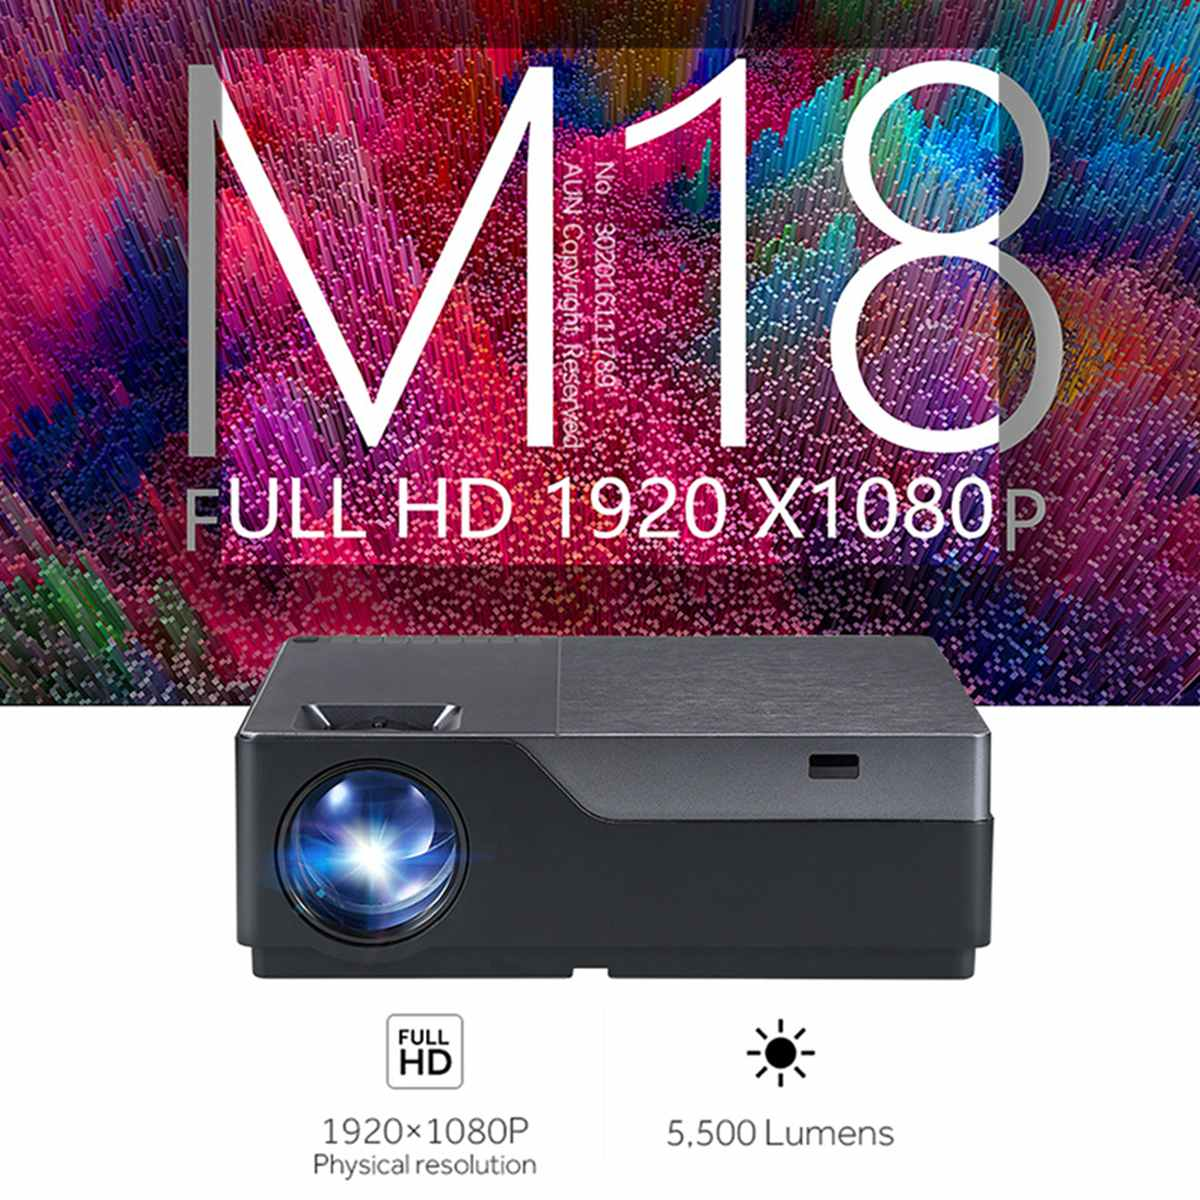 M18 LED Projector M18UP 5500 Lumens 1920x1080P Android 6.0 wifi Video Beamer LED Projector for 4K Home Cinema US Fast Shipping image